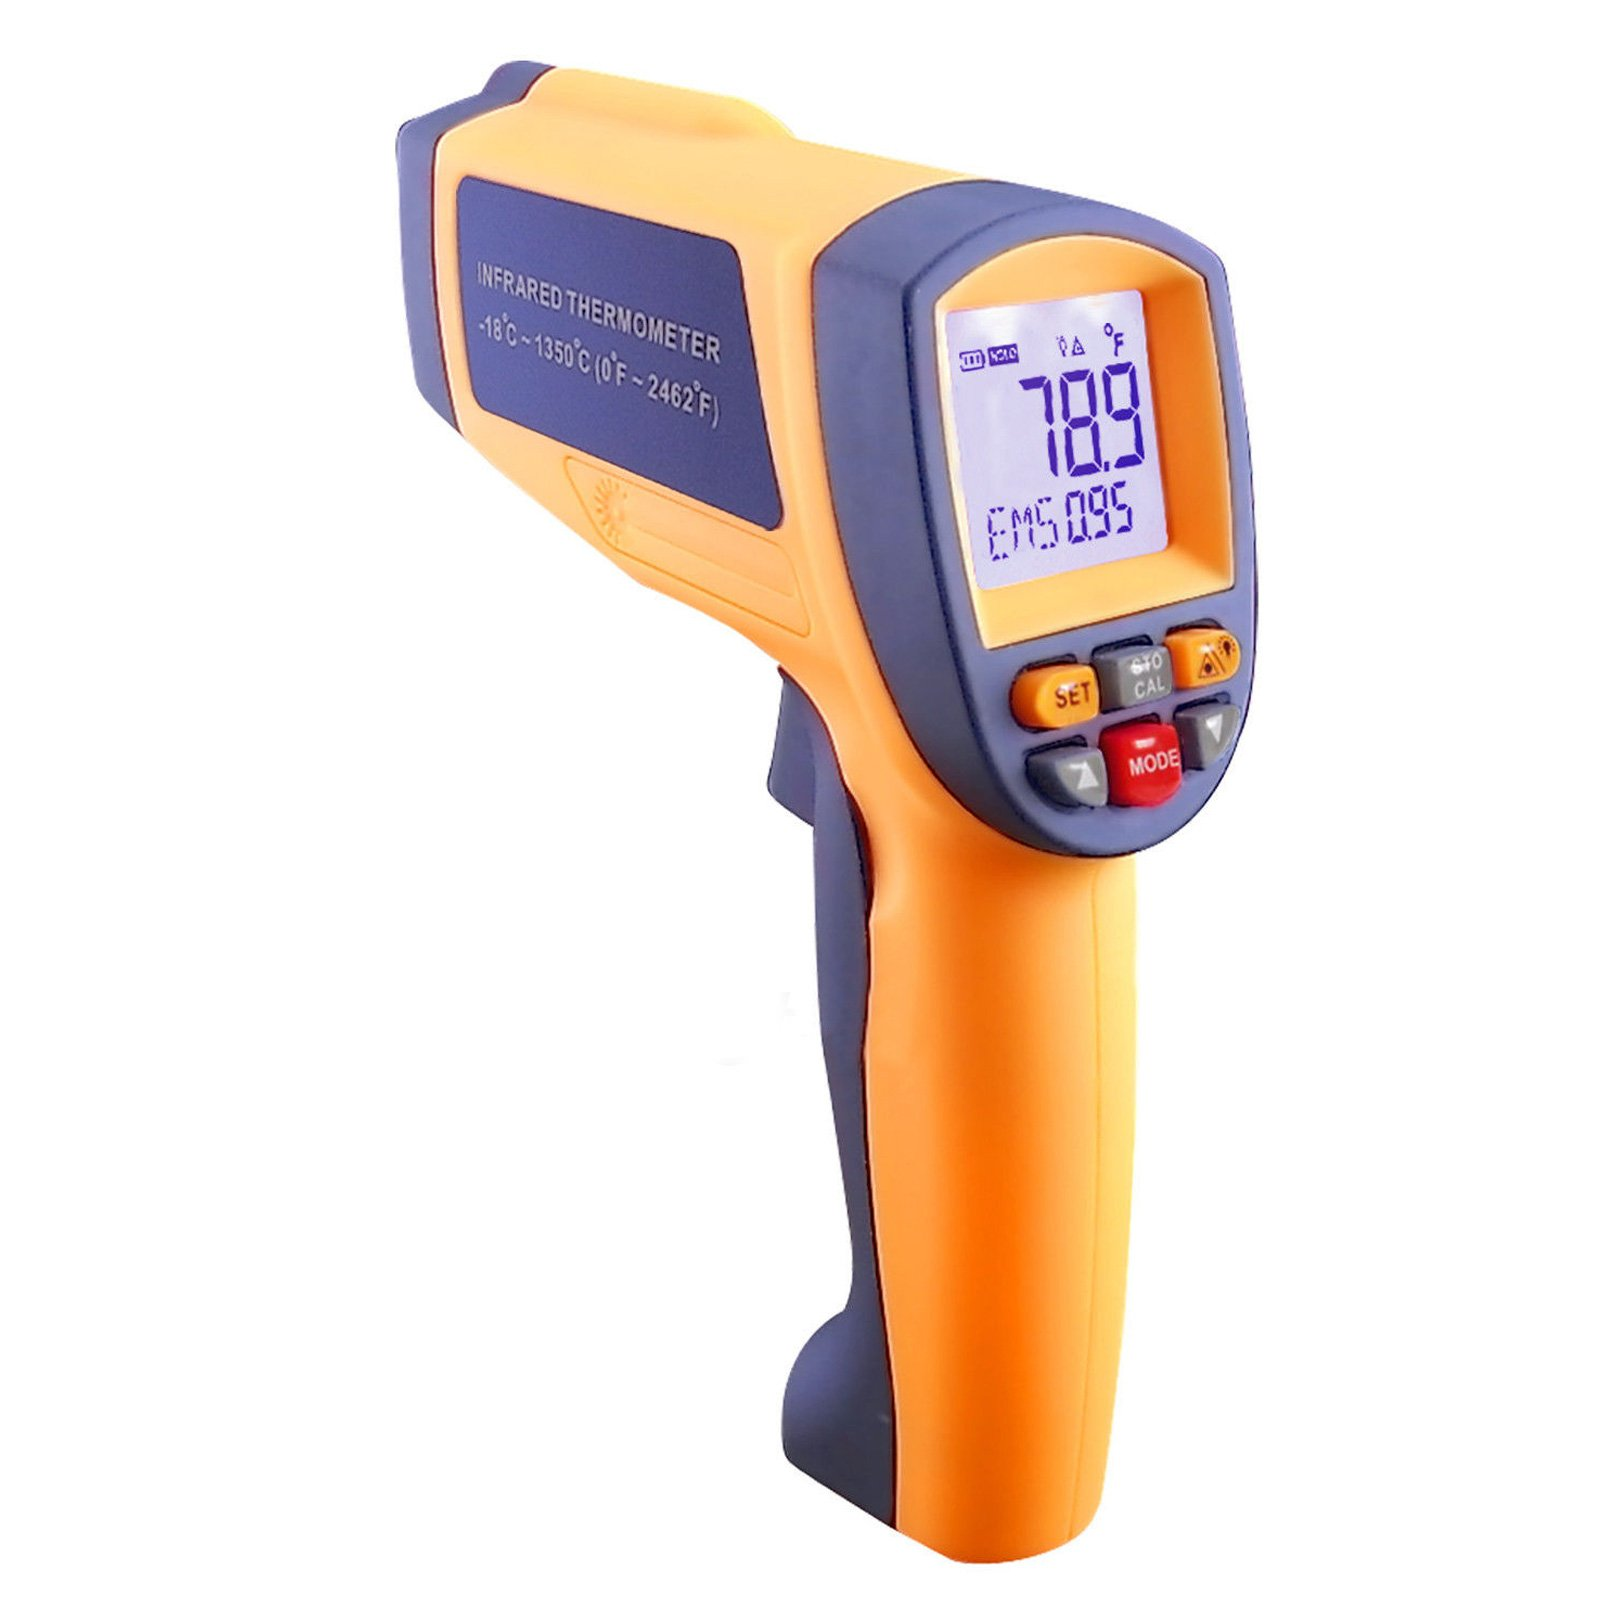 Digital IR Laser Thermometer with 50 Is To 1 Distance Spot Ratio and -18 To 1350 Degree C Or 0 To 2462 Degree F